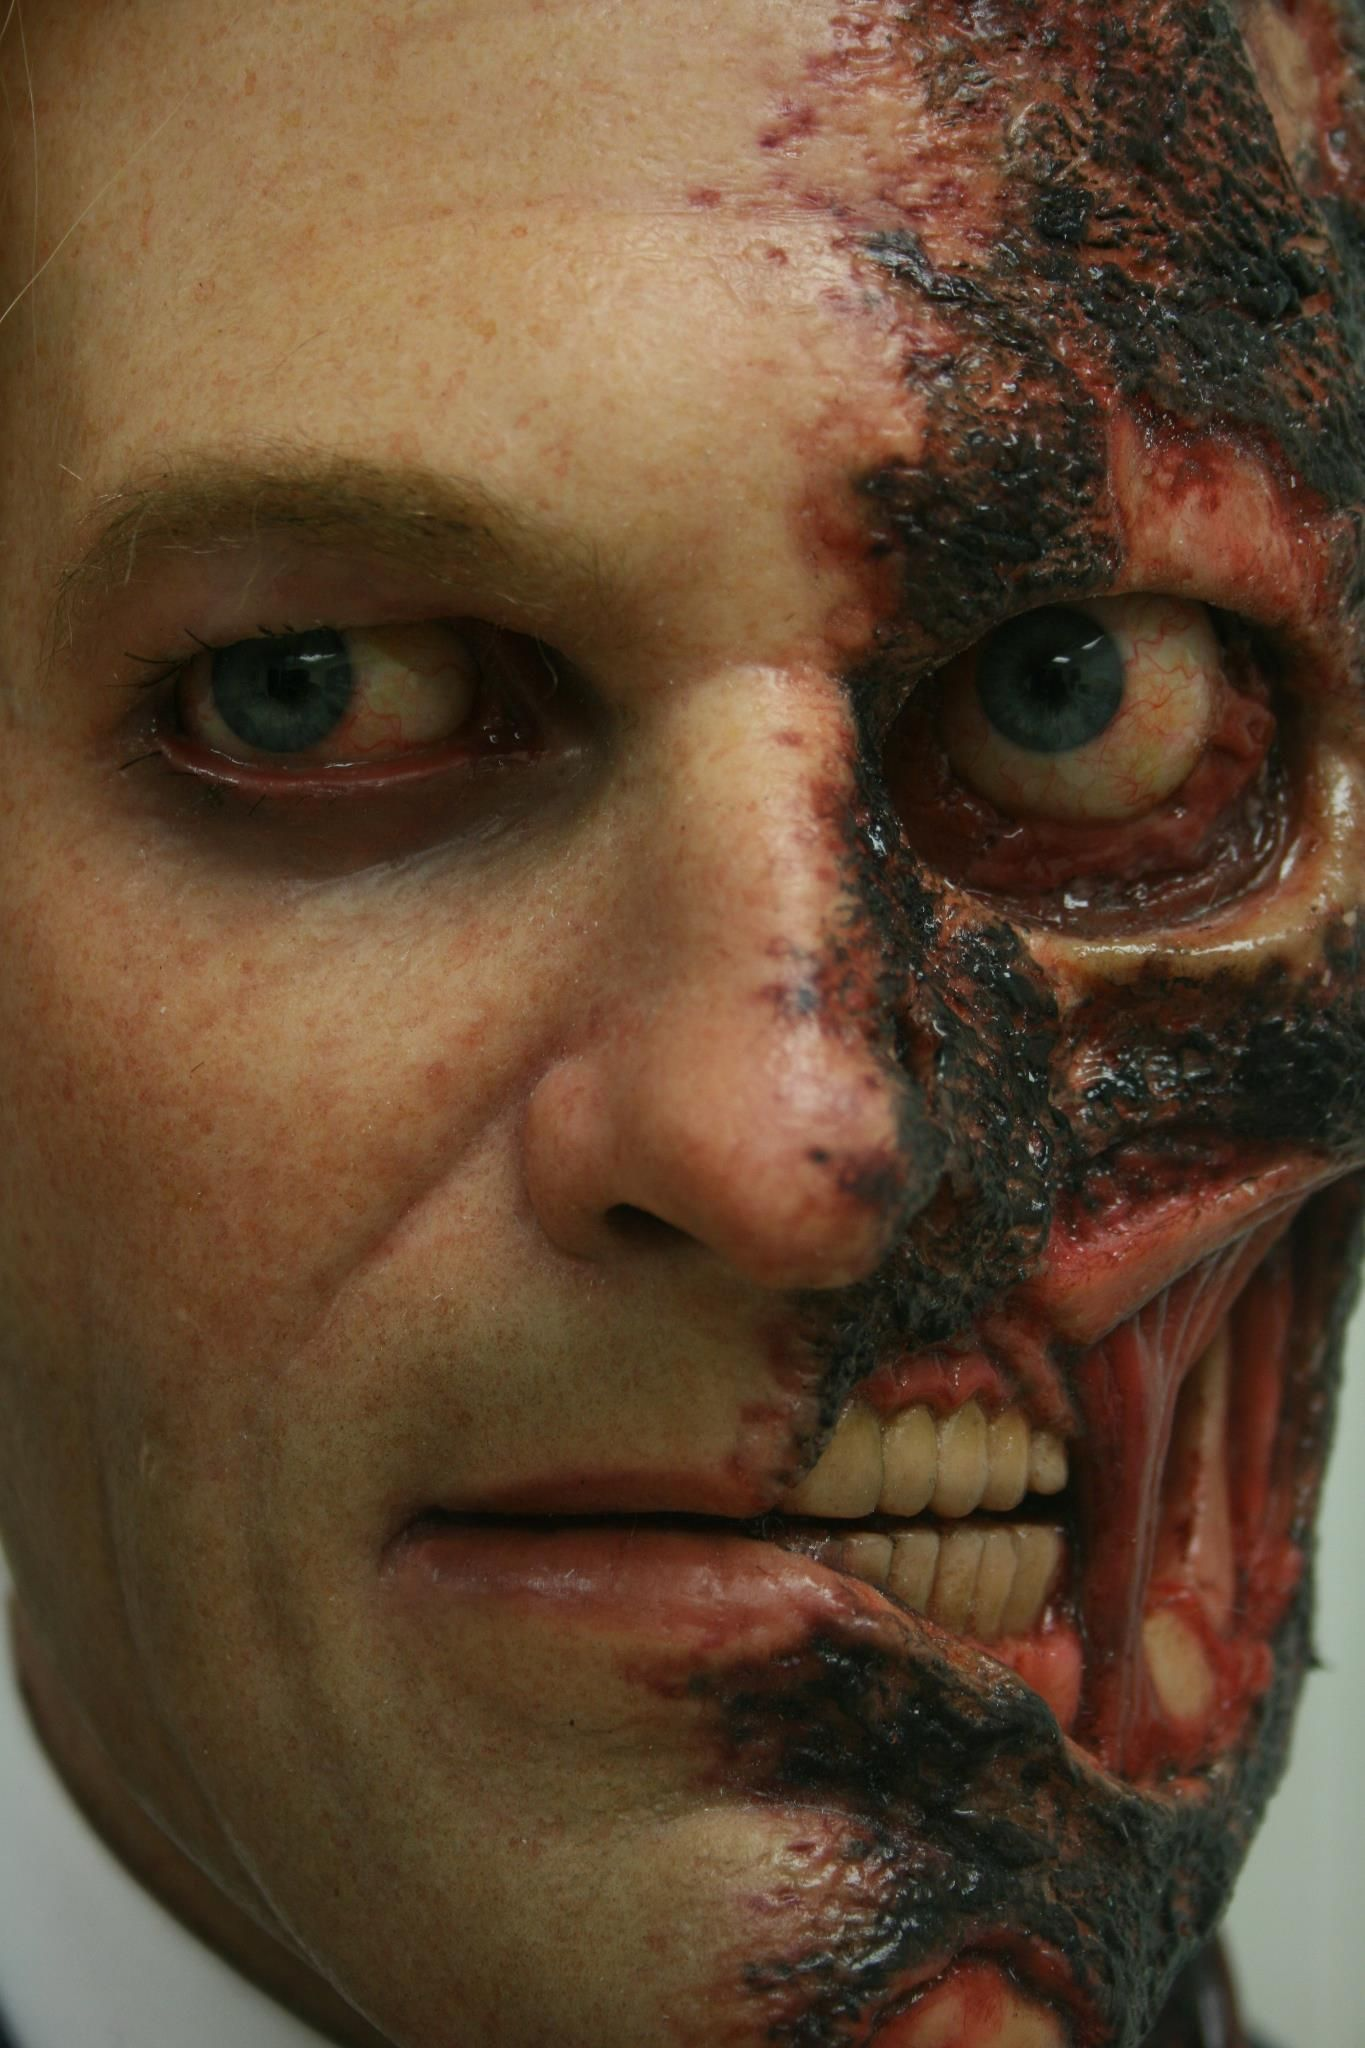 Two Face (Batman) special effects make-up | Special effects make ...